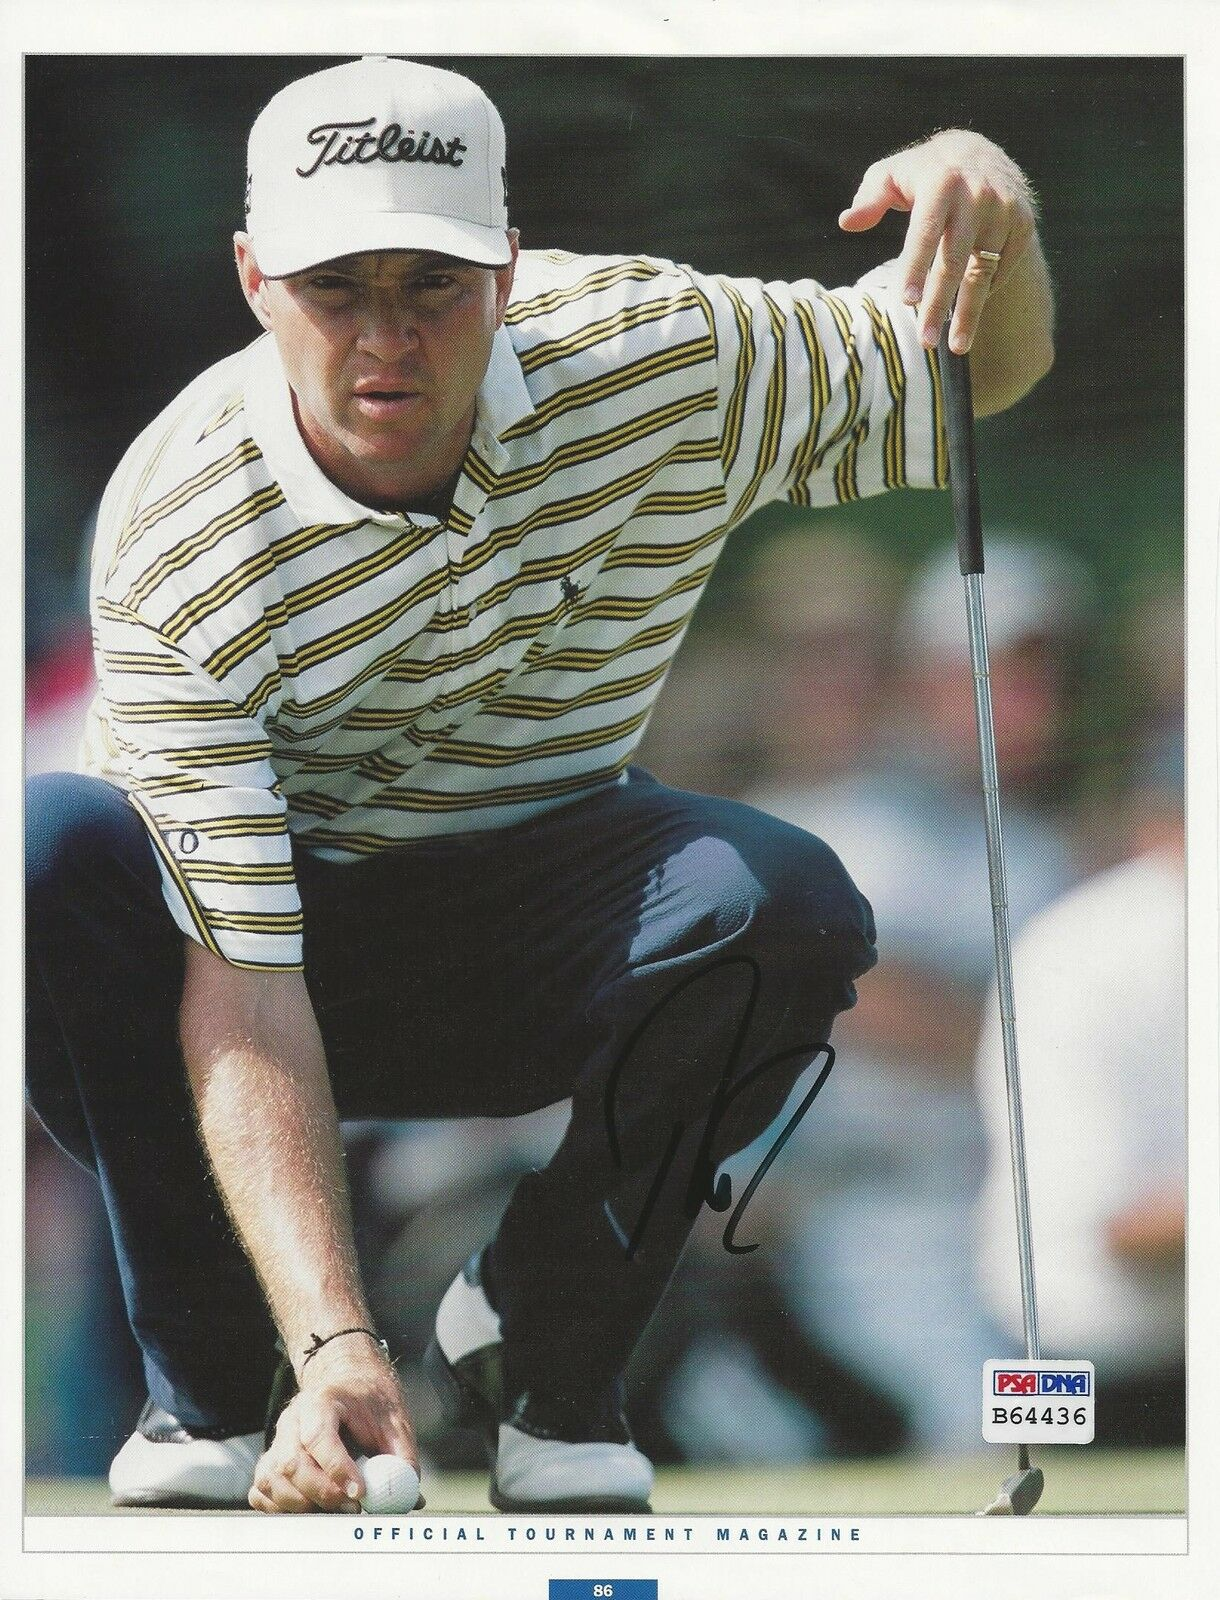 Davis Love III PGA Golf signed 8x10 photo PSA/DNA #B64436